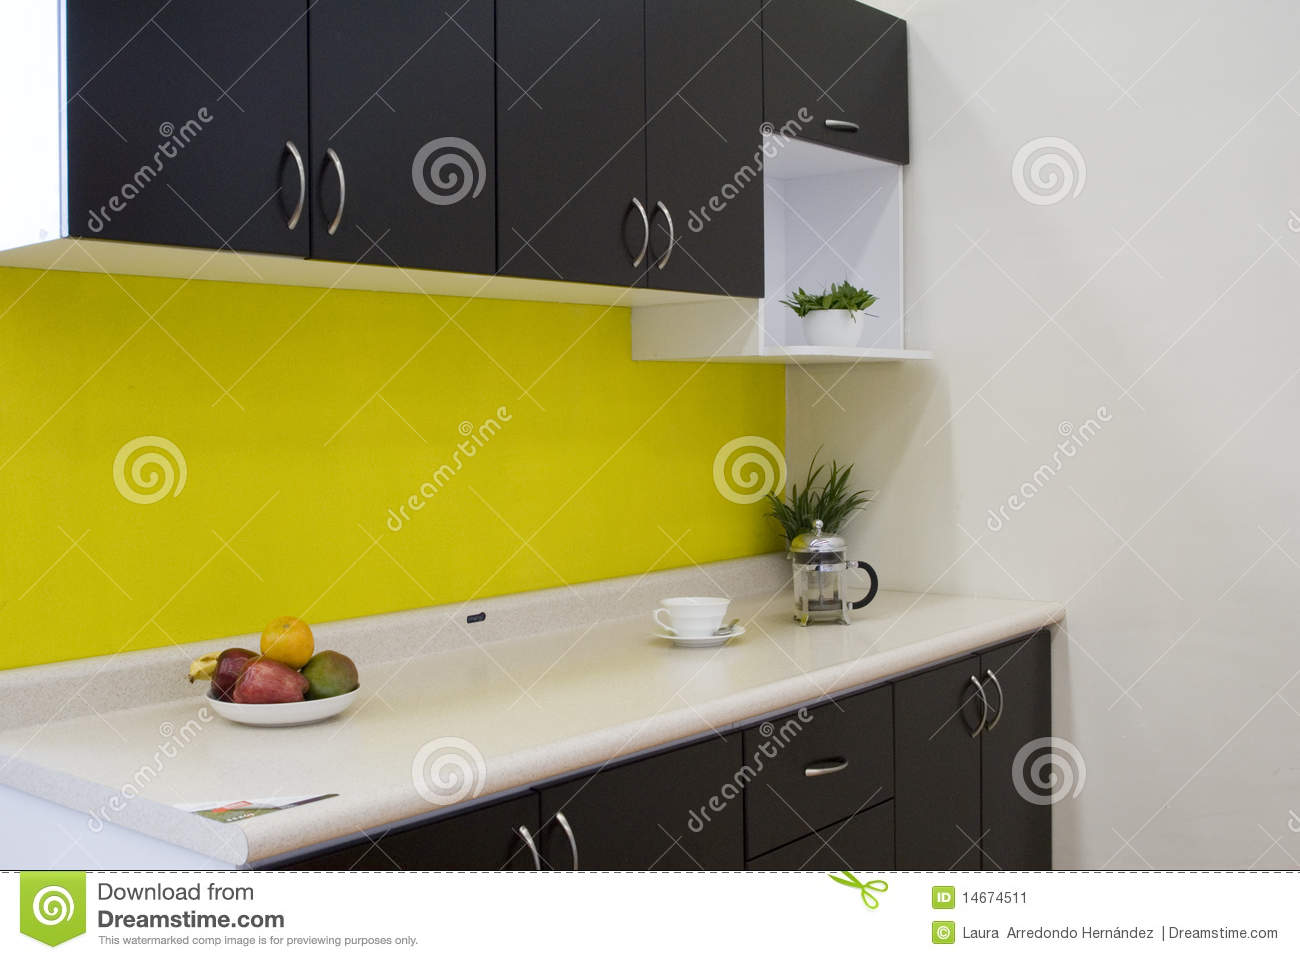 cuisine avec un mur jaune image stock image du home 14674511. Black Bedroom Furniture Sets. Home Design Ideas